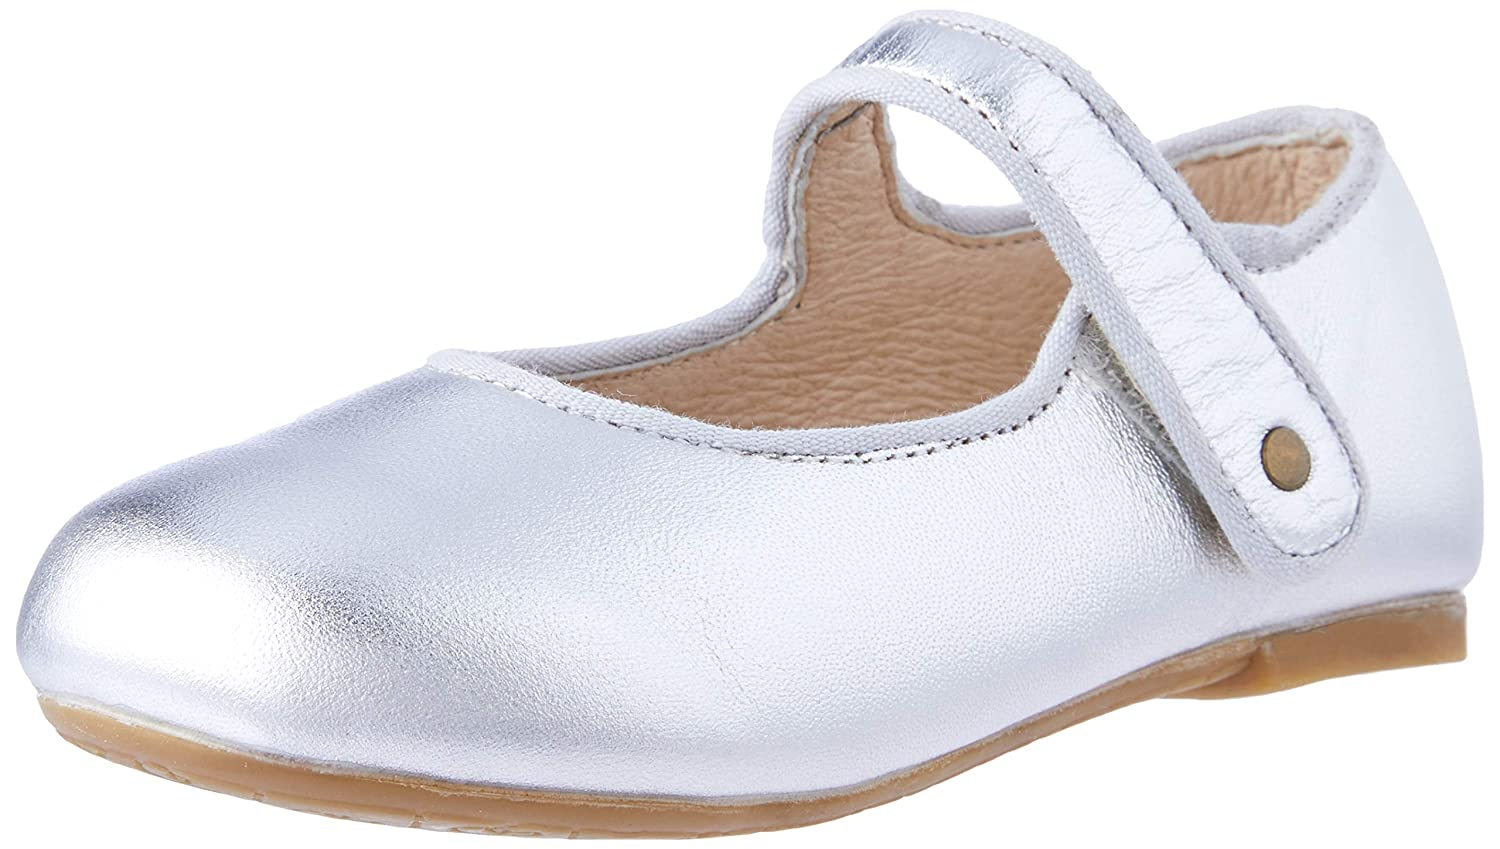 cc84f1708ea8c Amazon.com  Old Soles Baby Girl s Lady Jane (Toddler Little Kid)  Shoes